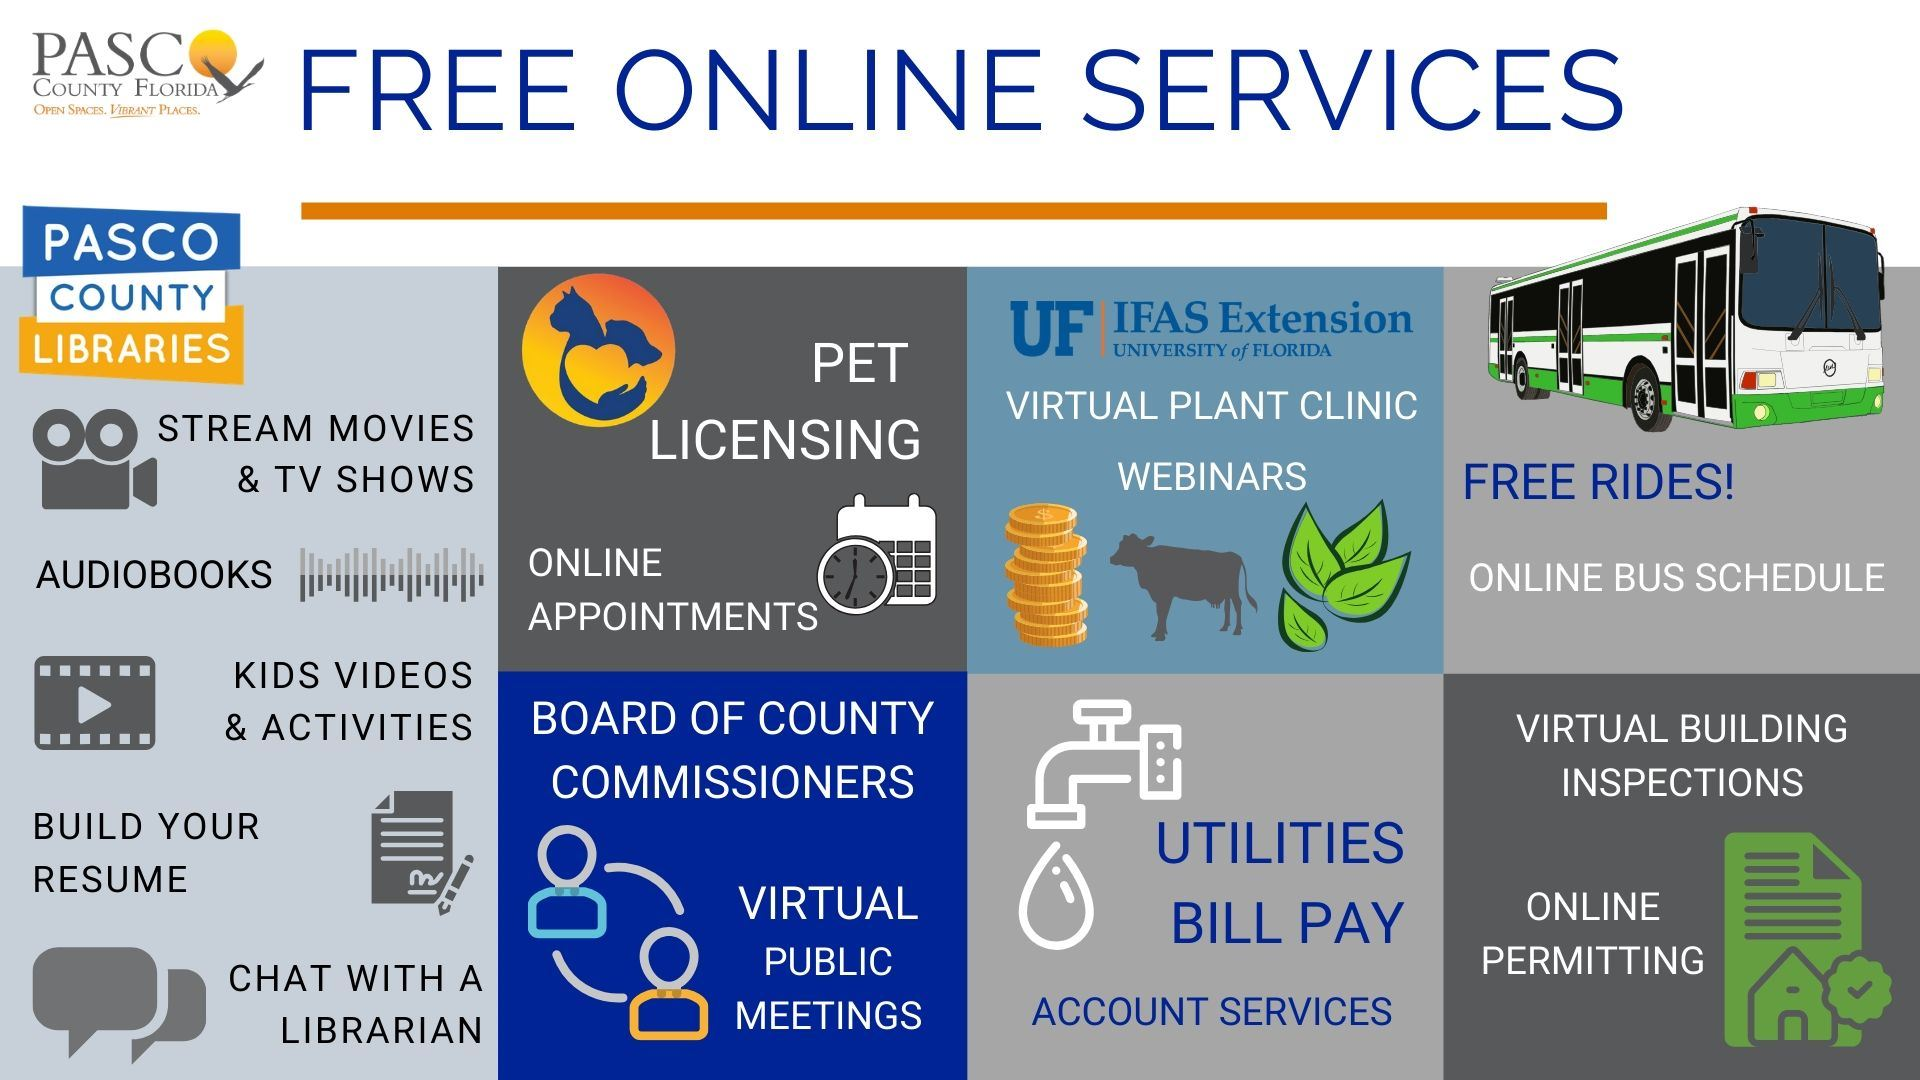 4.14.20 (EOC) Online Services Infographic